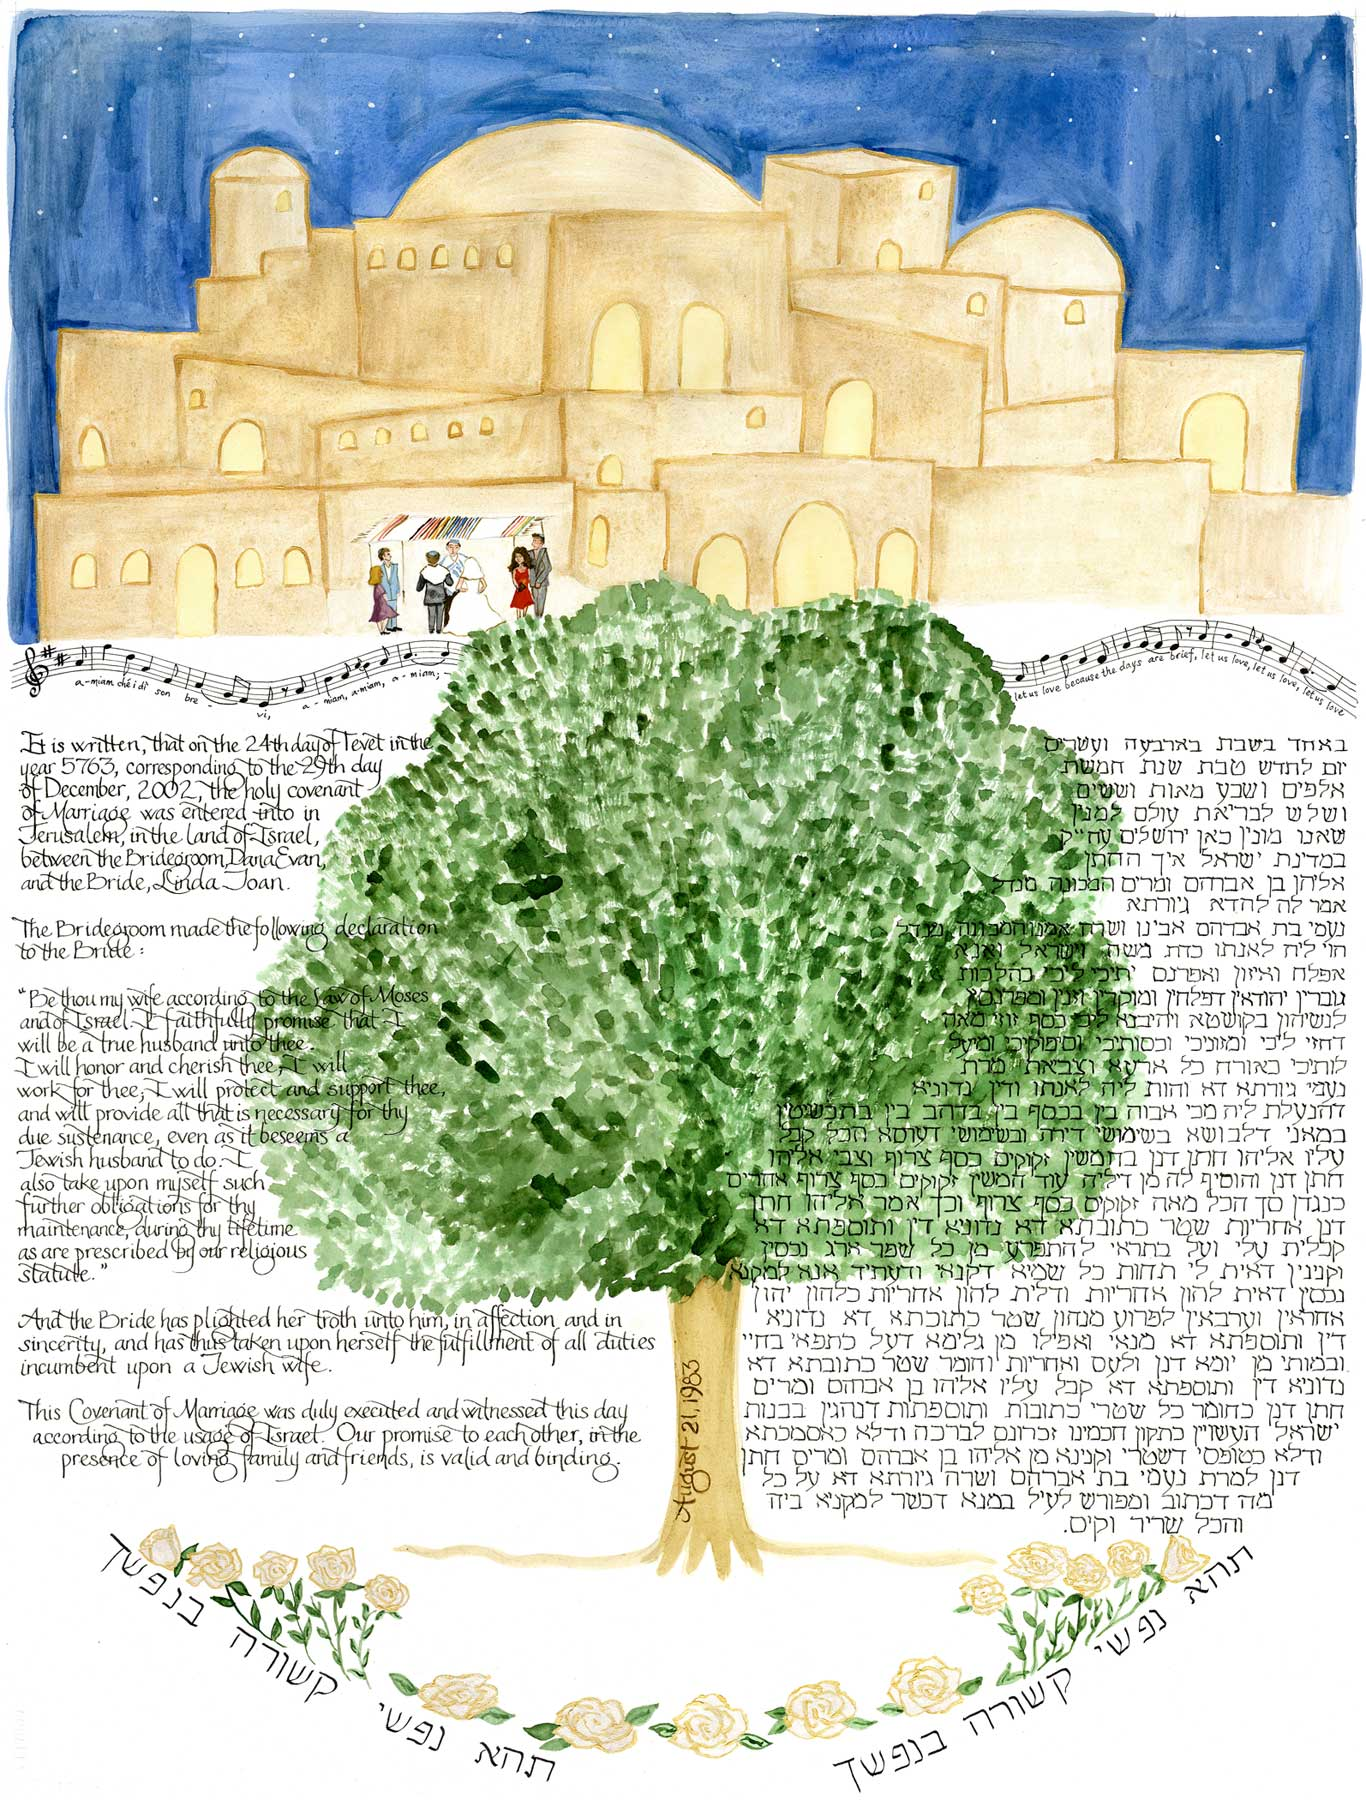 This Anniversary Ketubah Depicts A Wedding Taking Place Under The Night Sky In Old City Of Jerusalem Linden Tree Foreground Recalls